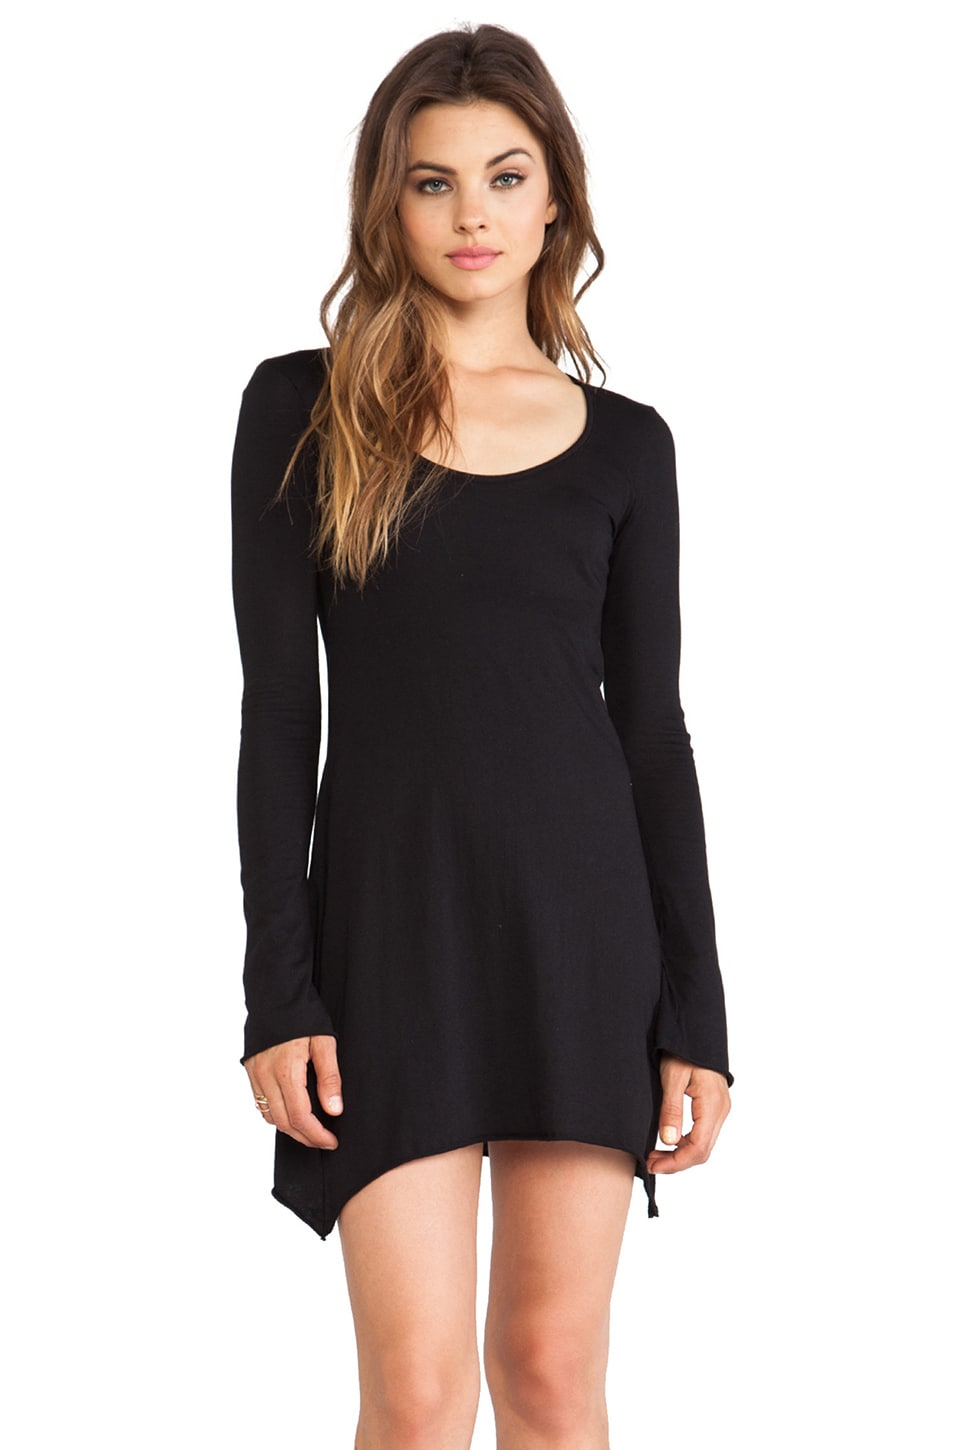 Bobi Light Weight Jersey Tunic in Black